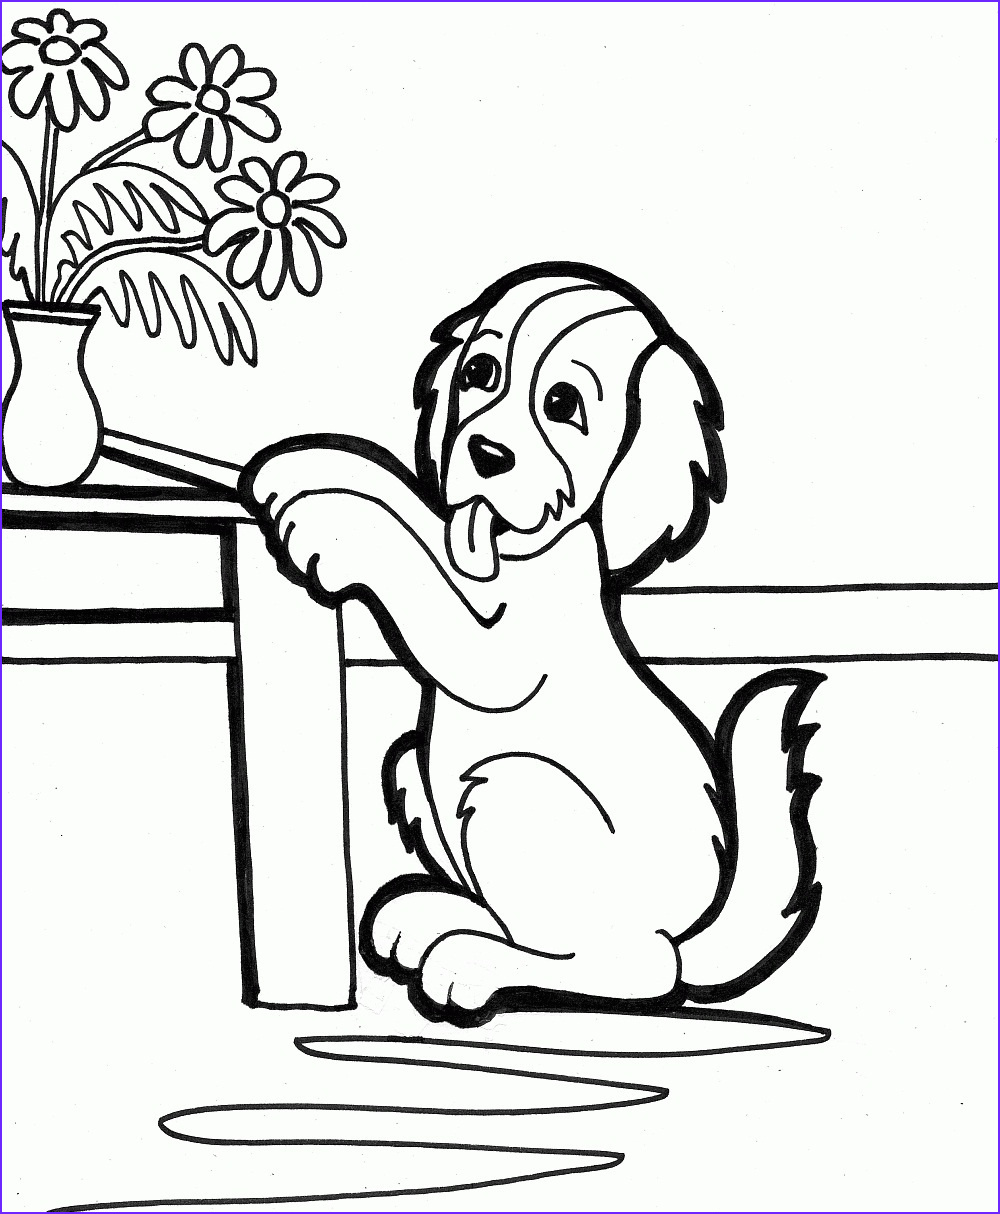 Puppy Coloring Picture Best Of Photography Free Printable Puppies Coloring Pages for Kids